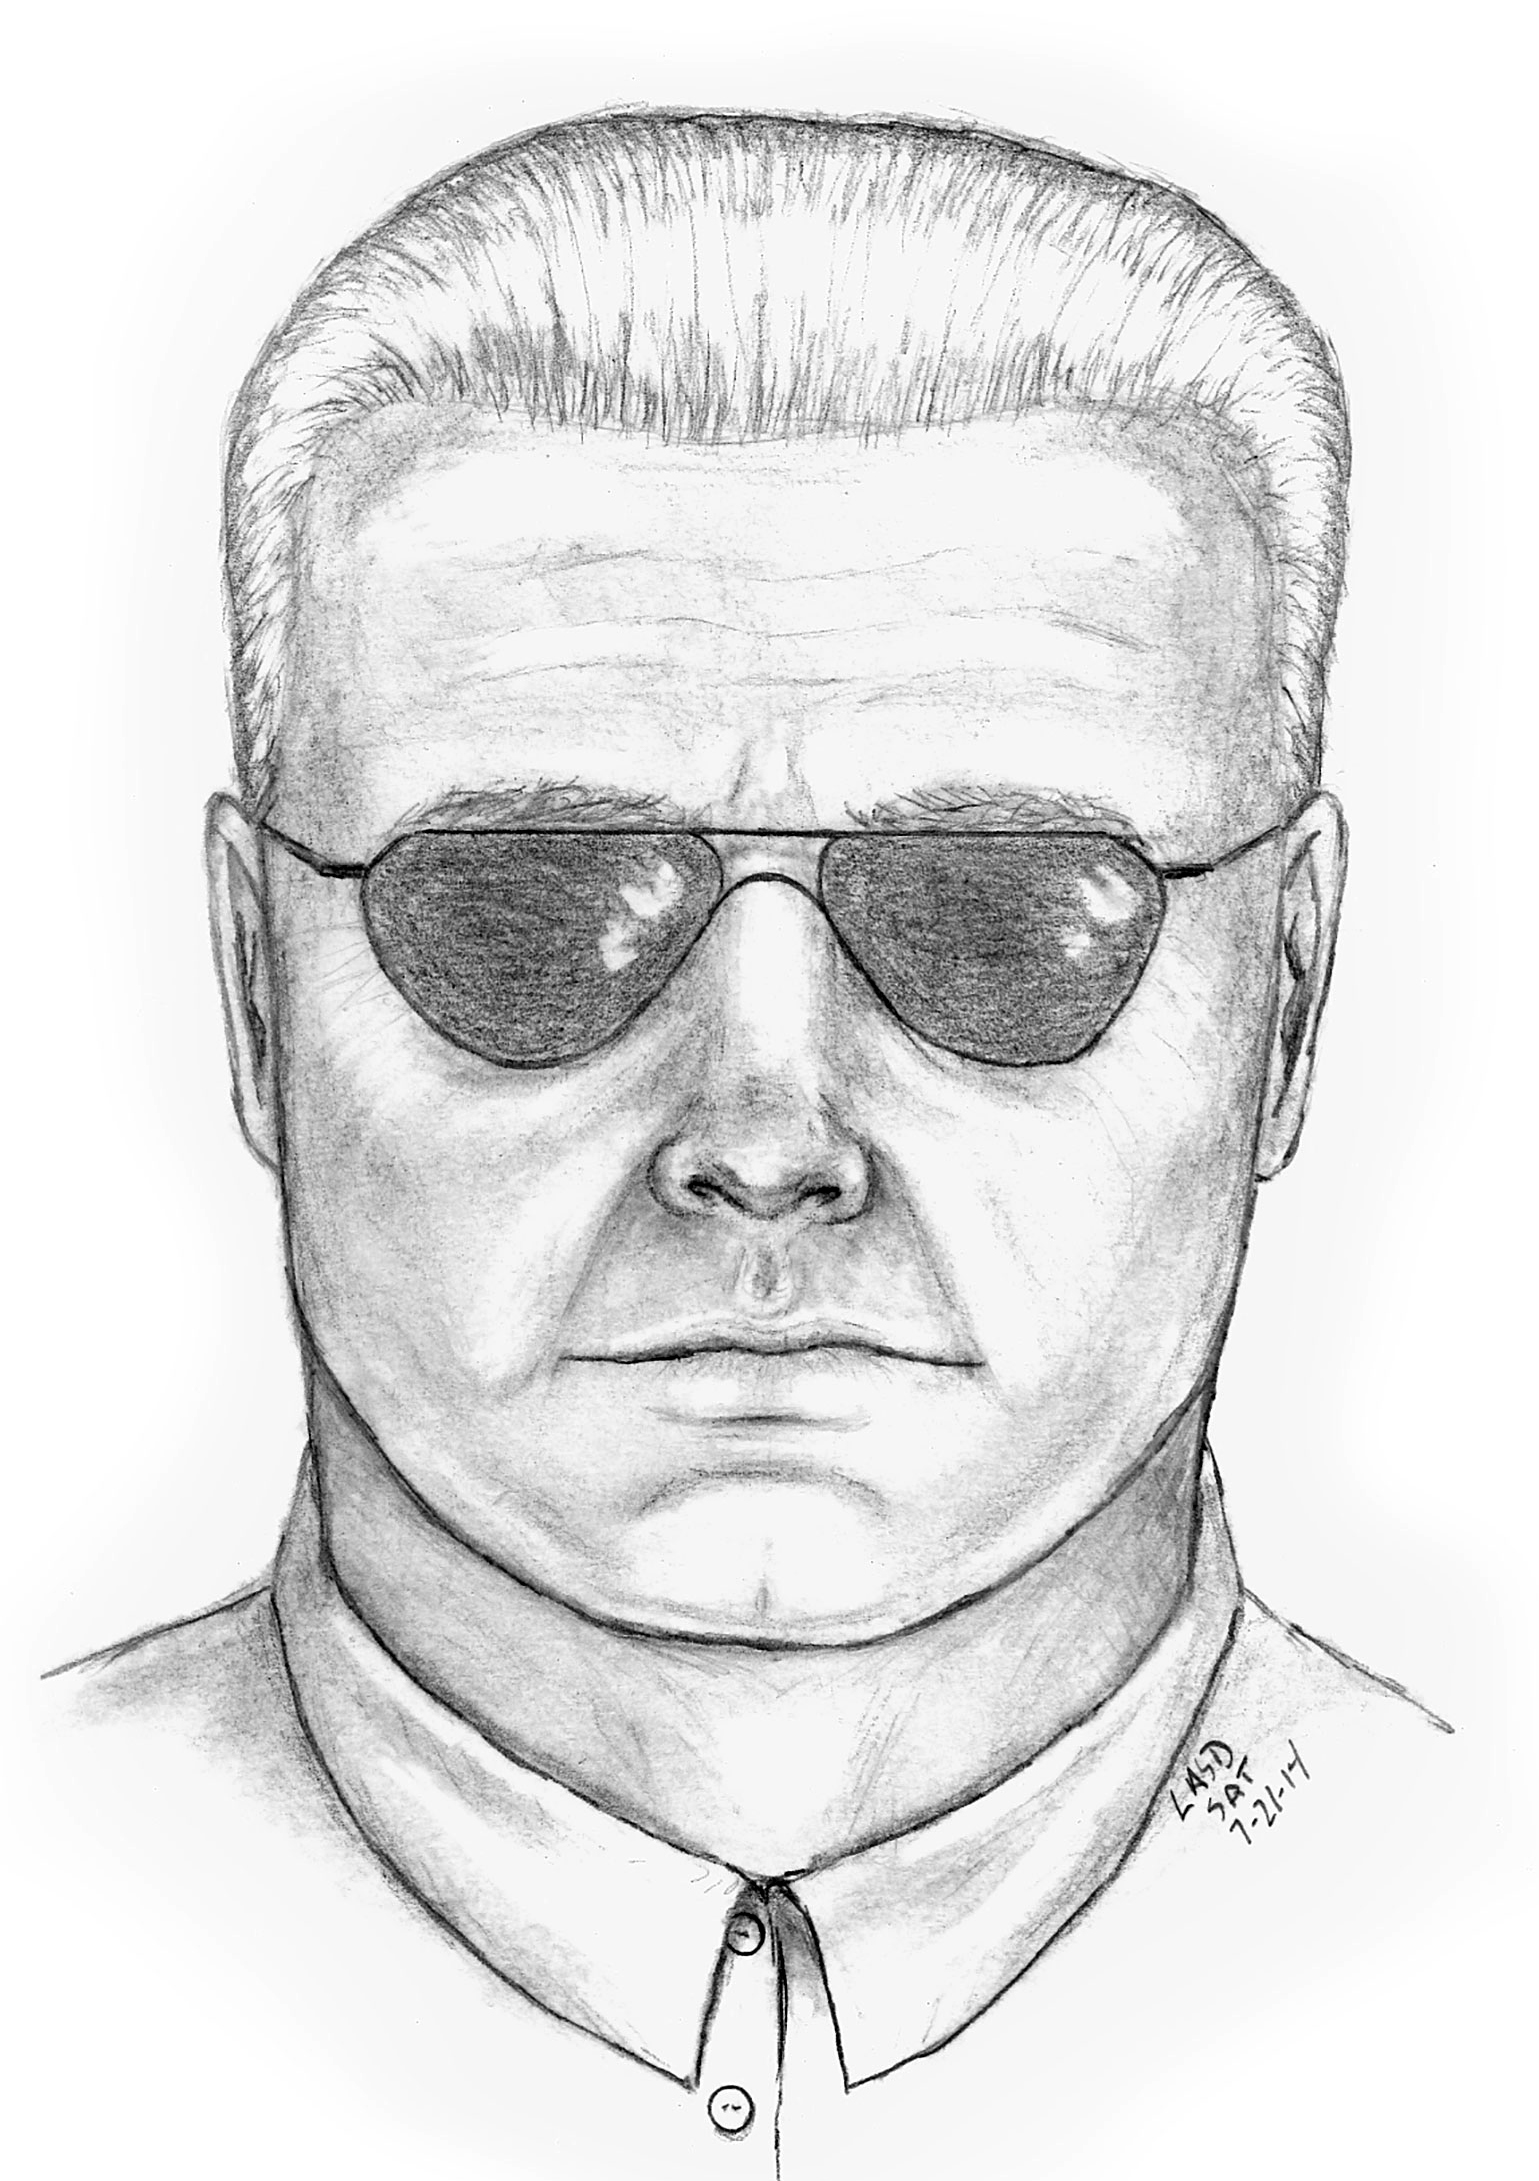 Officials release sketch of suspect in peacock shooting death